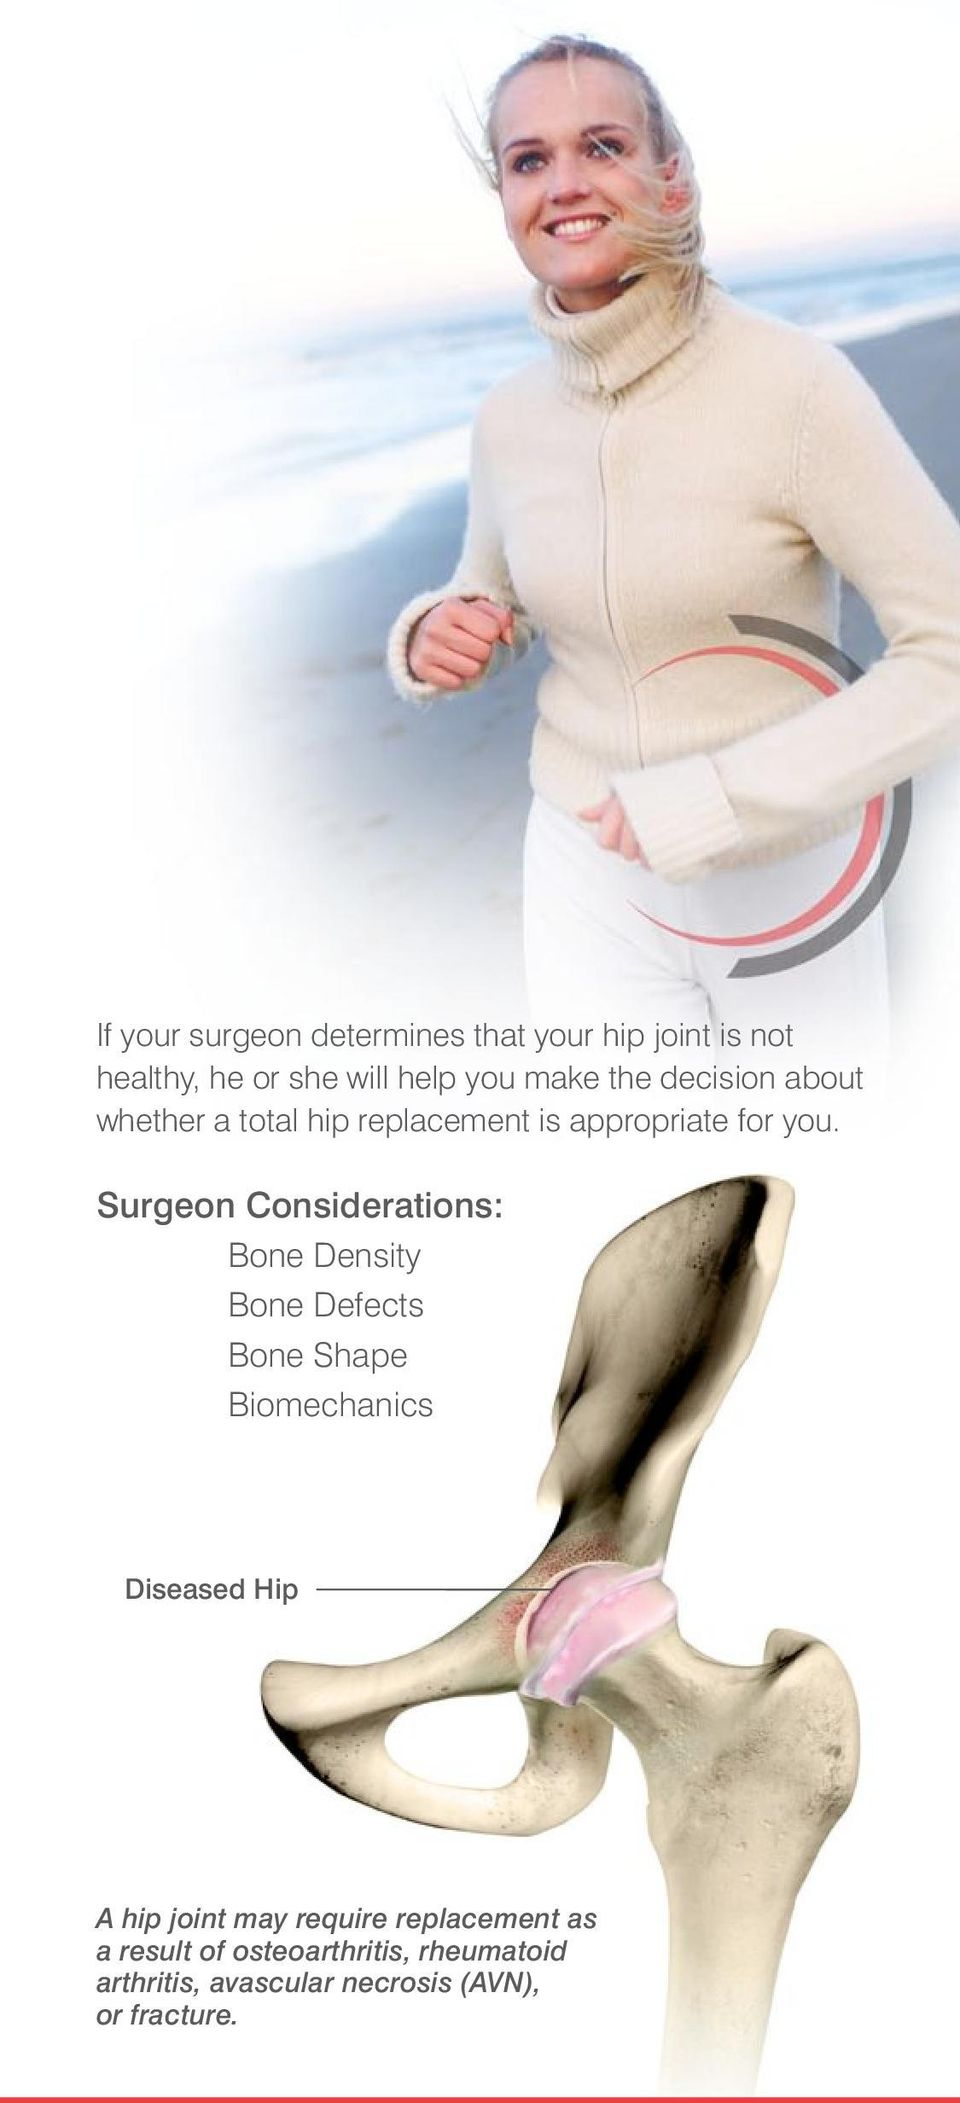 Surgeon Considerations: Bone Density Bone Defects Bone Shape Biomechanics Diseased Hip A hip